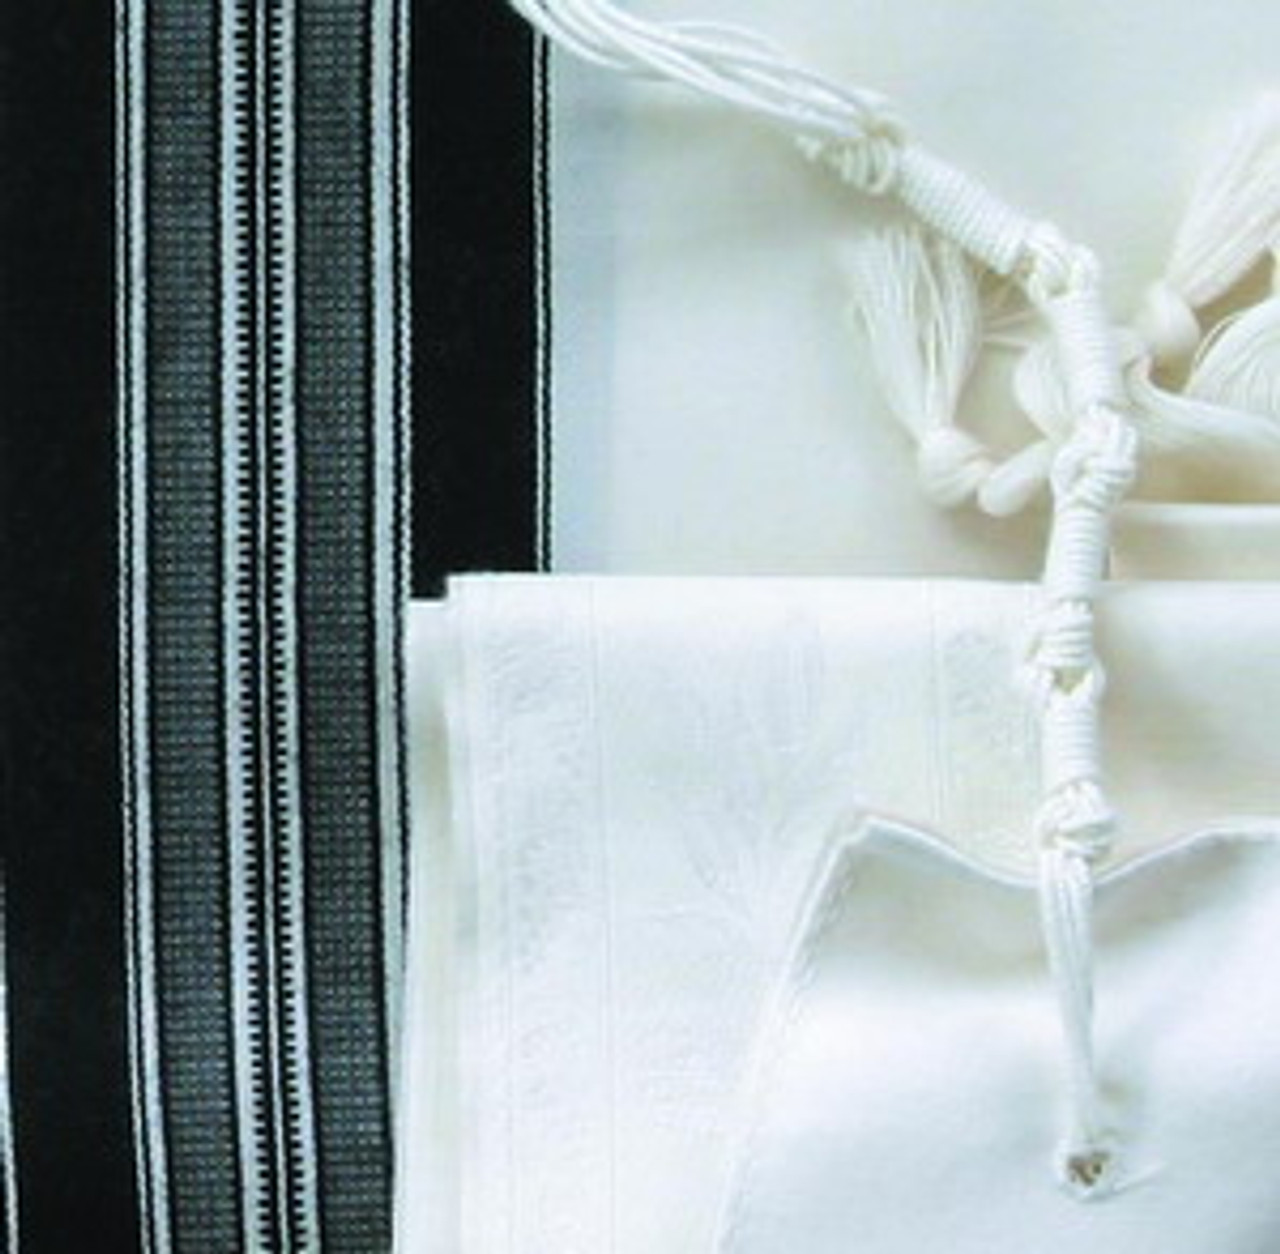 Standard Ashkenazi tzitzit tying. Other tzitzit tying customs are also available.